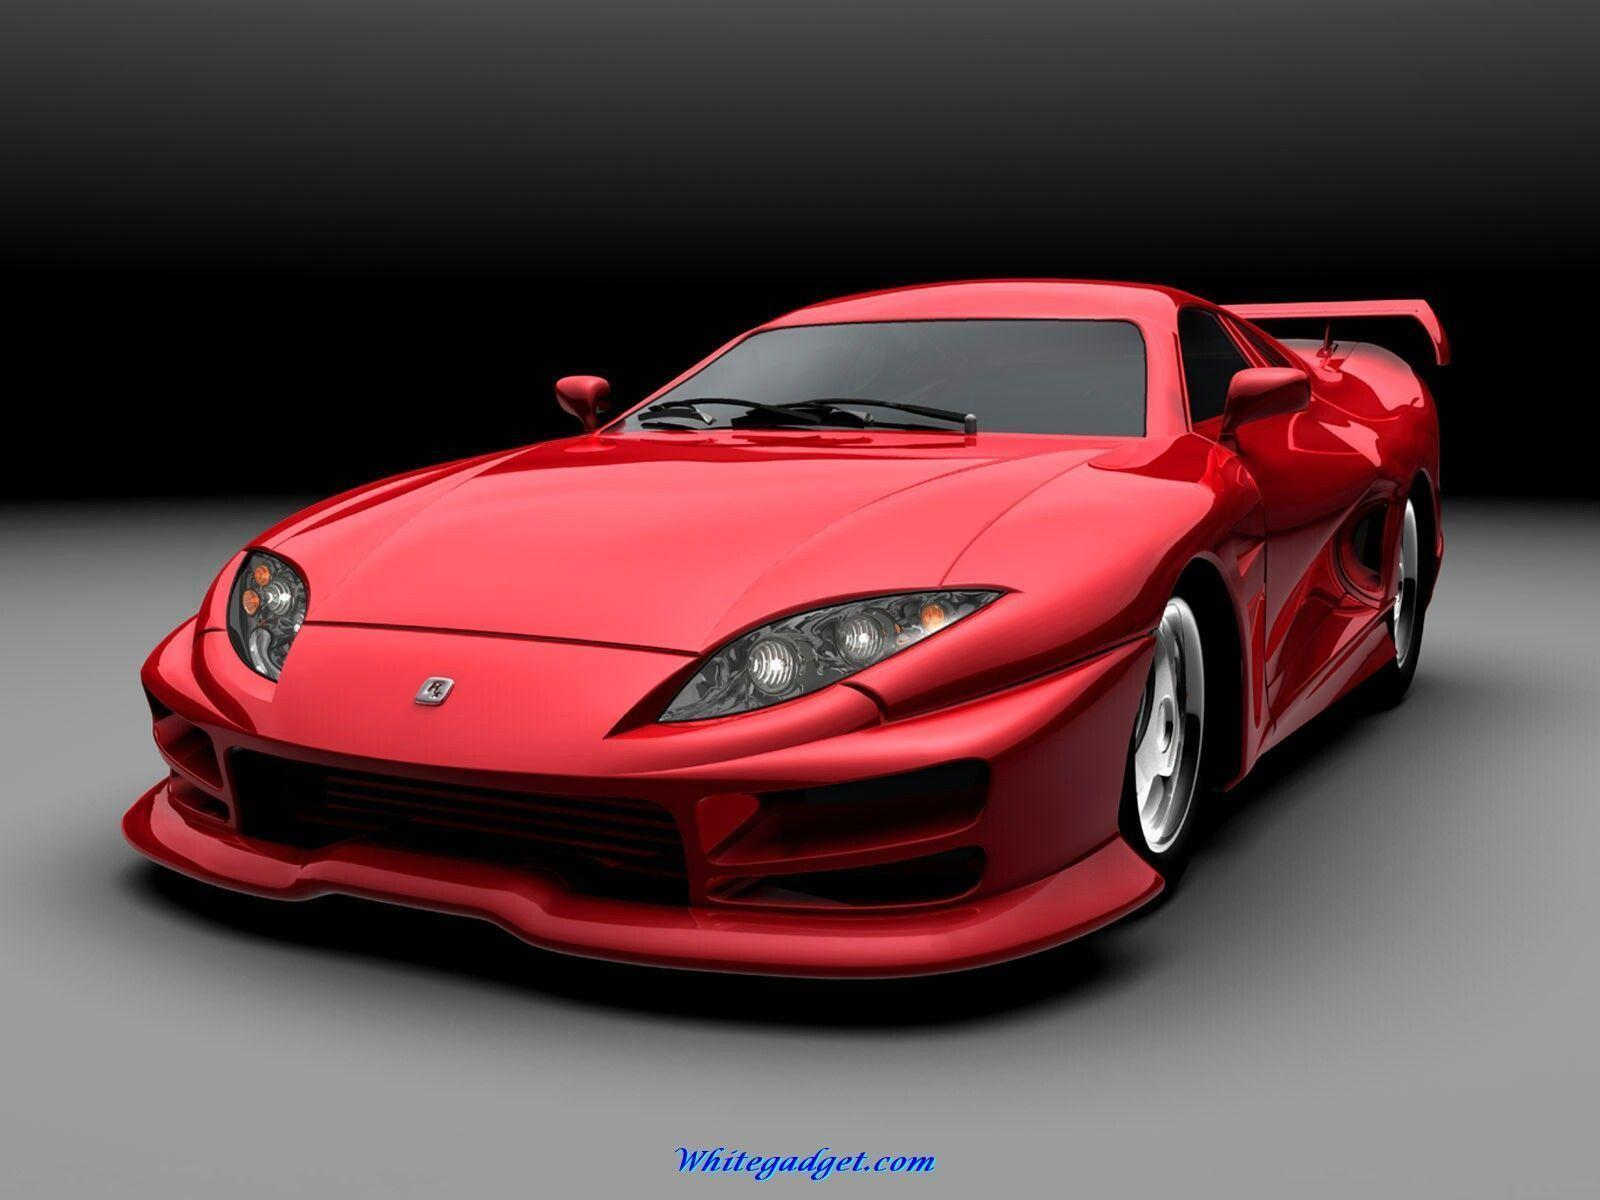 latest cars wallpapers - wallpaper cave